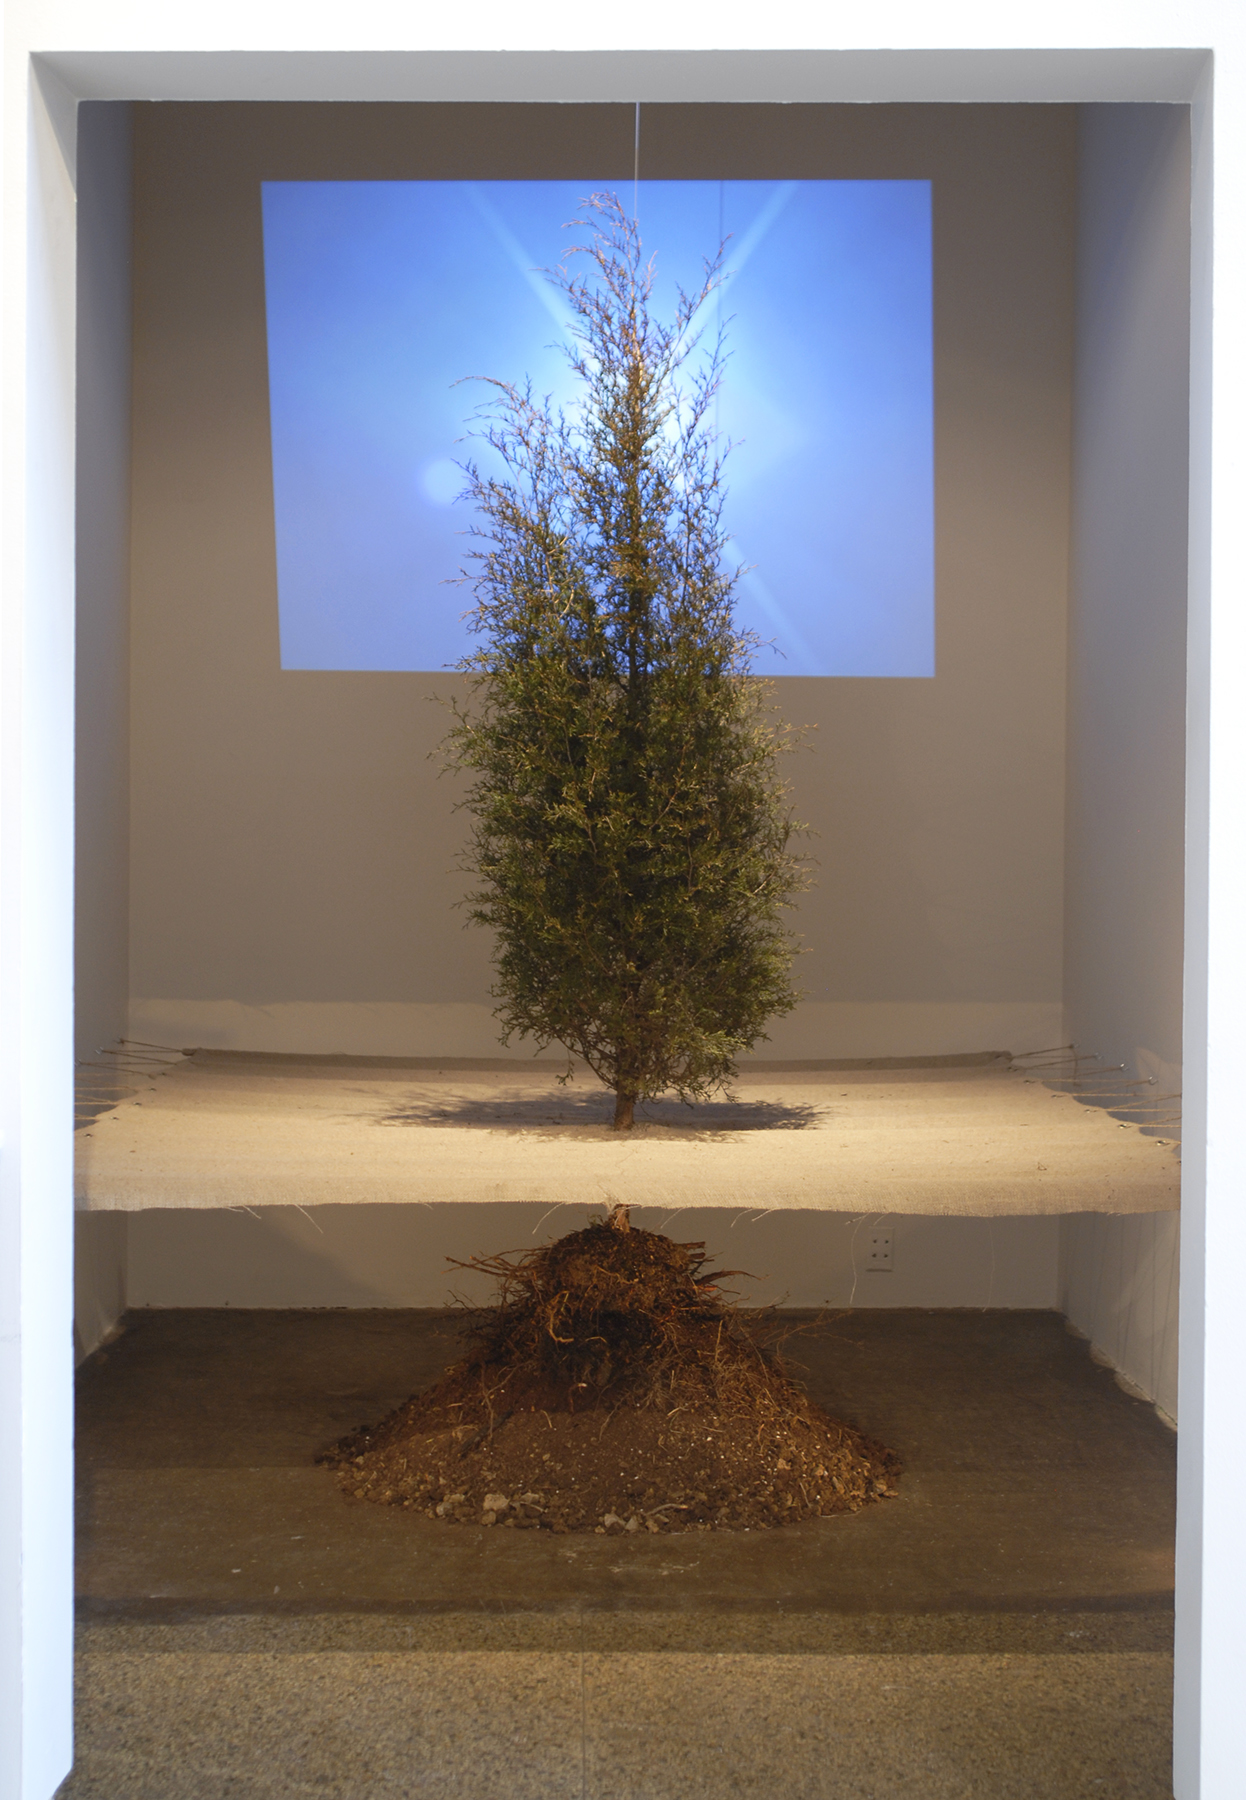 Time and Disregard  / 2010 / Burlap, evergreen tree, soil, video/audio projection / 14' x 8' x 12' (dimensions of room)